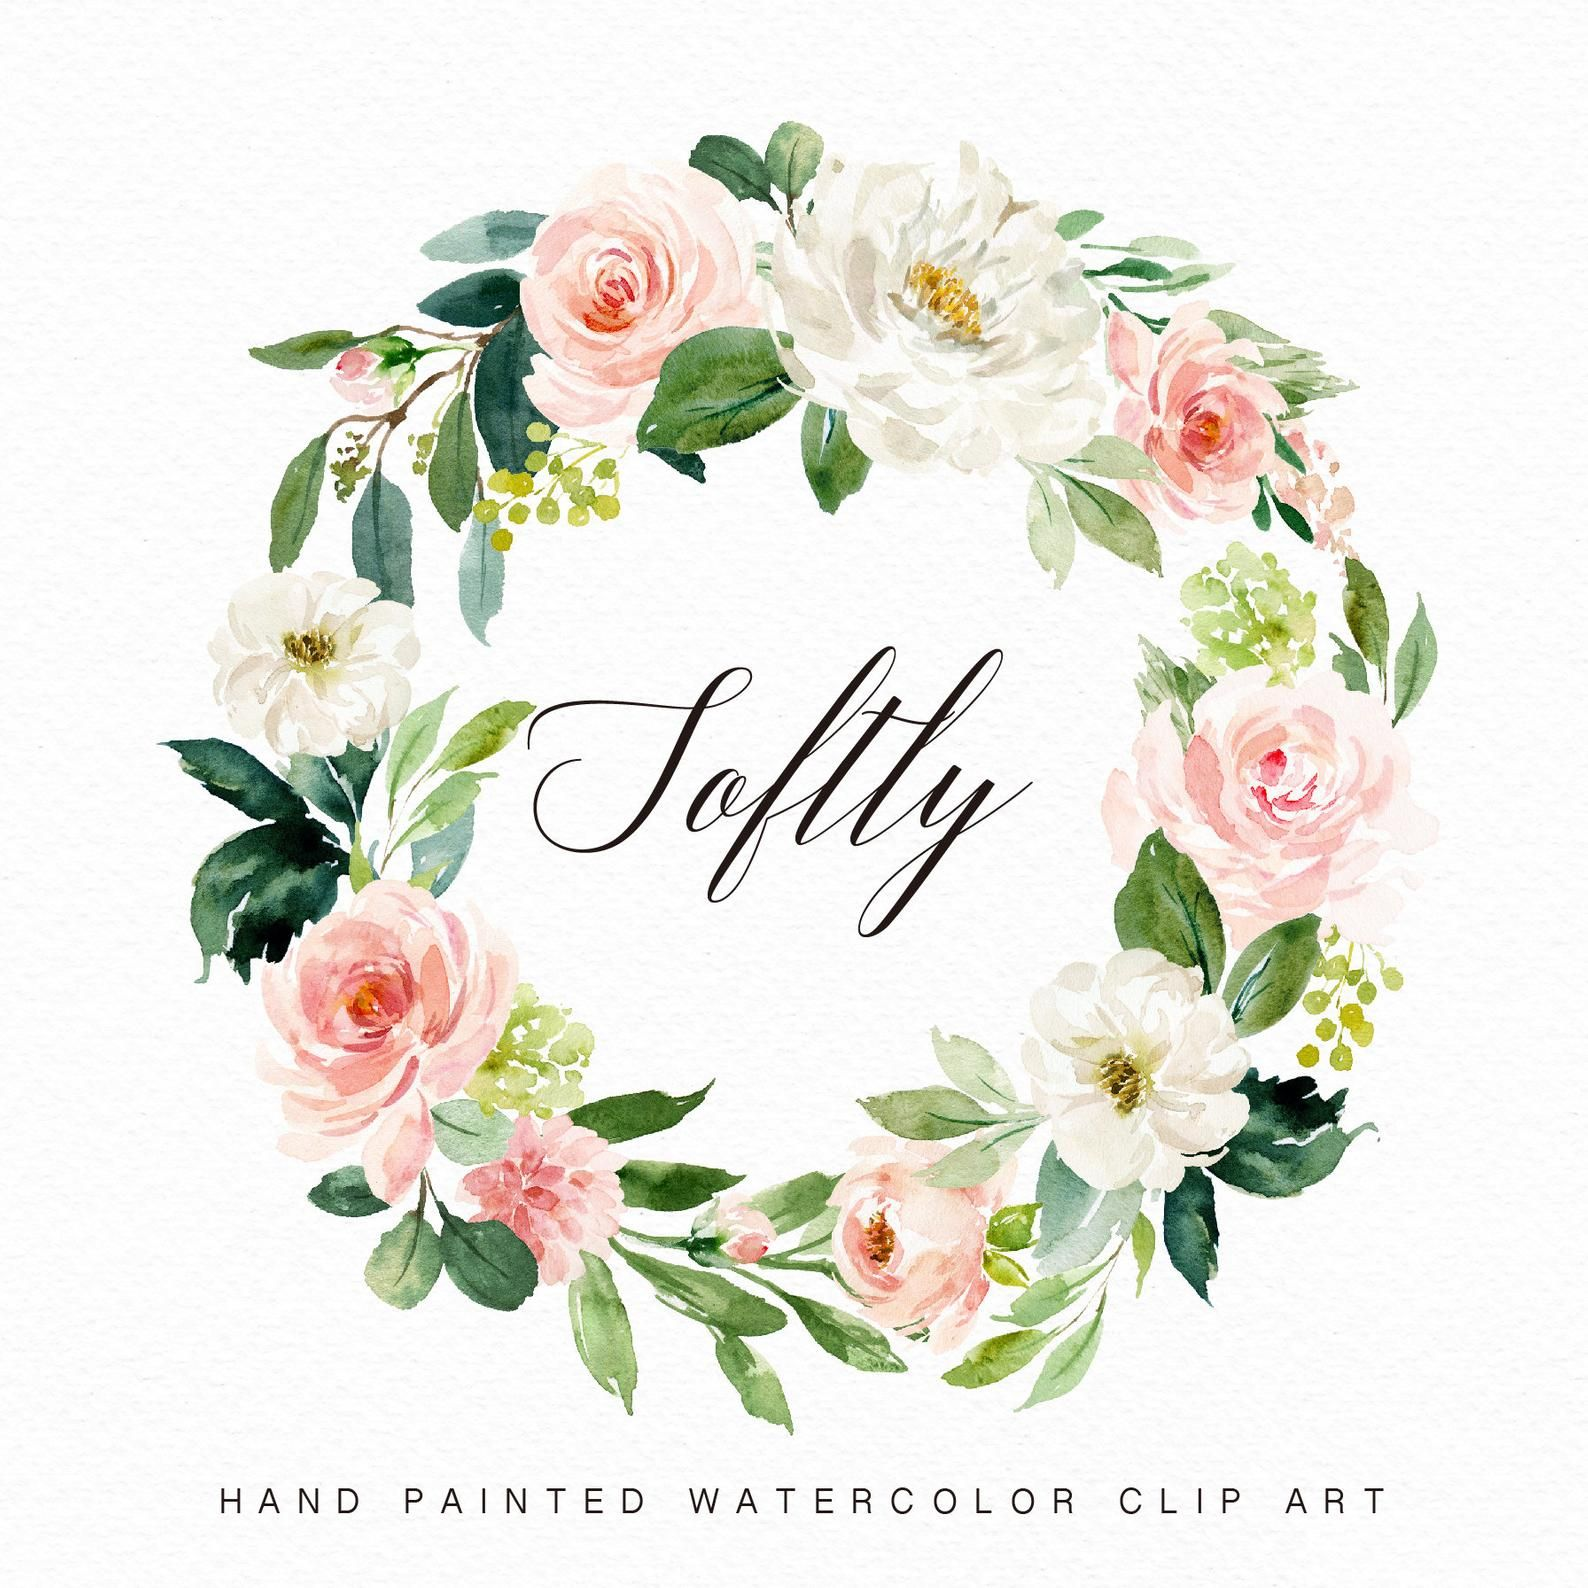 Watercolor Flower Wreath Softly Small Set Individual Png Etsy Watercolor Flower Wreath Watercolor Flowers Floral Wreath Watercolor